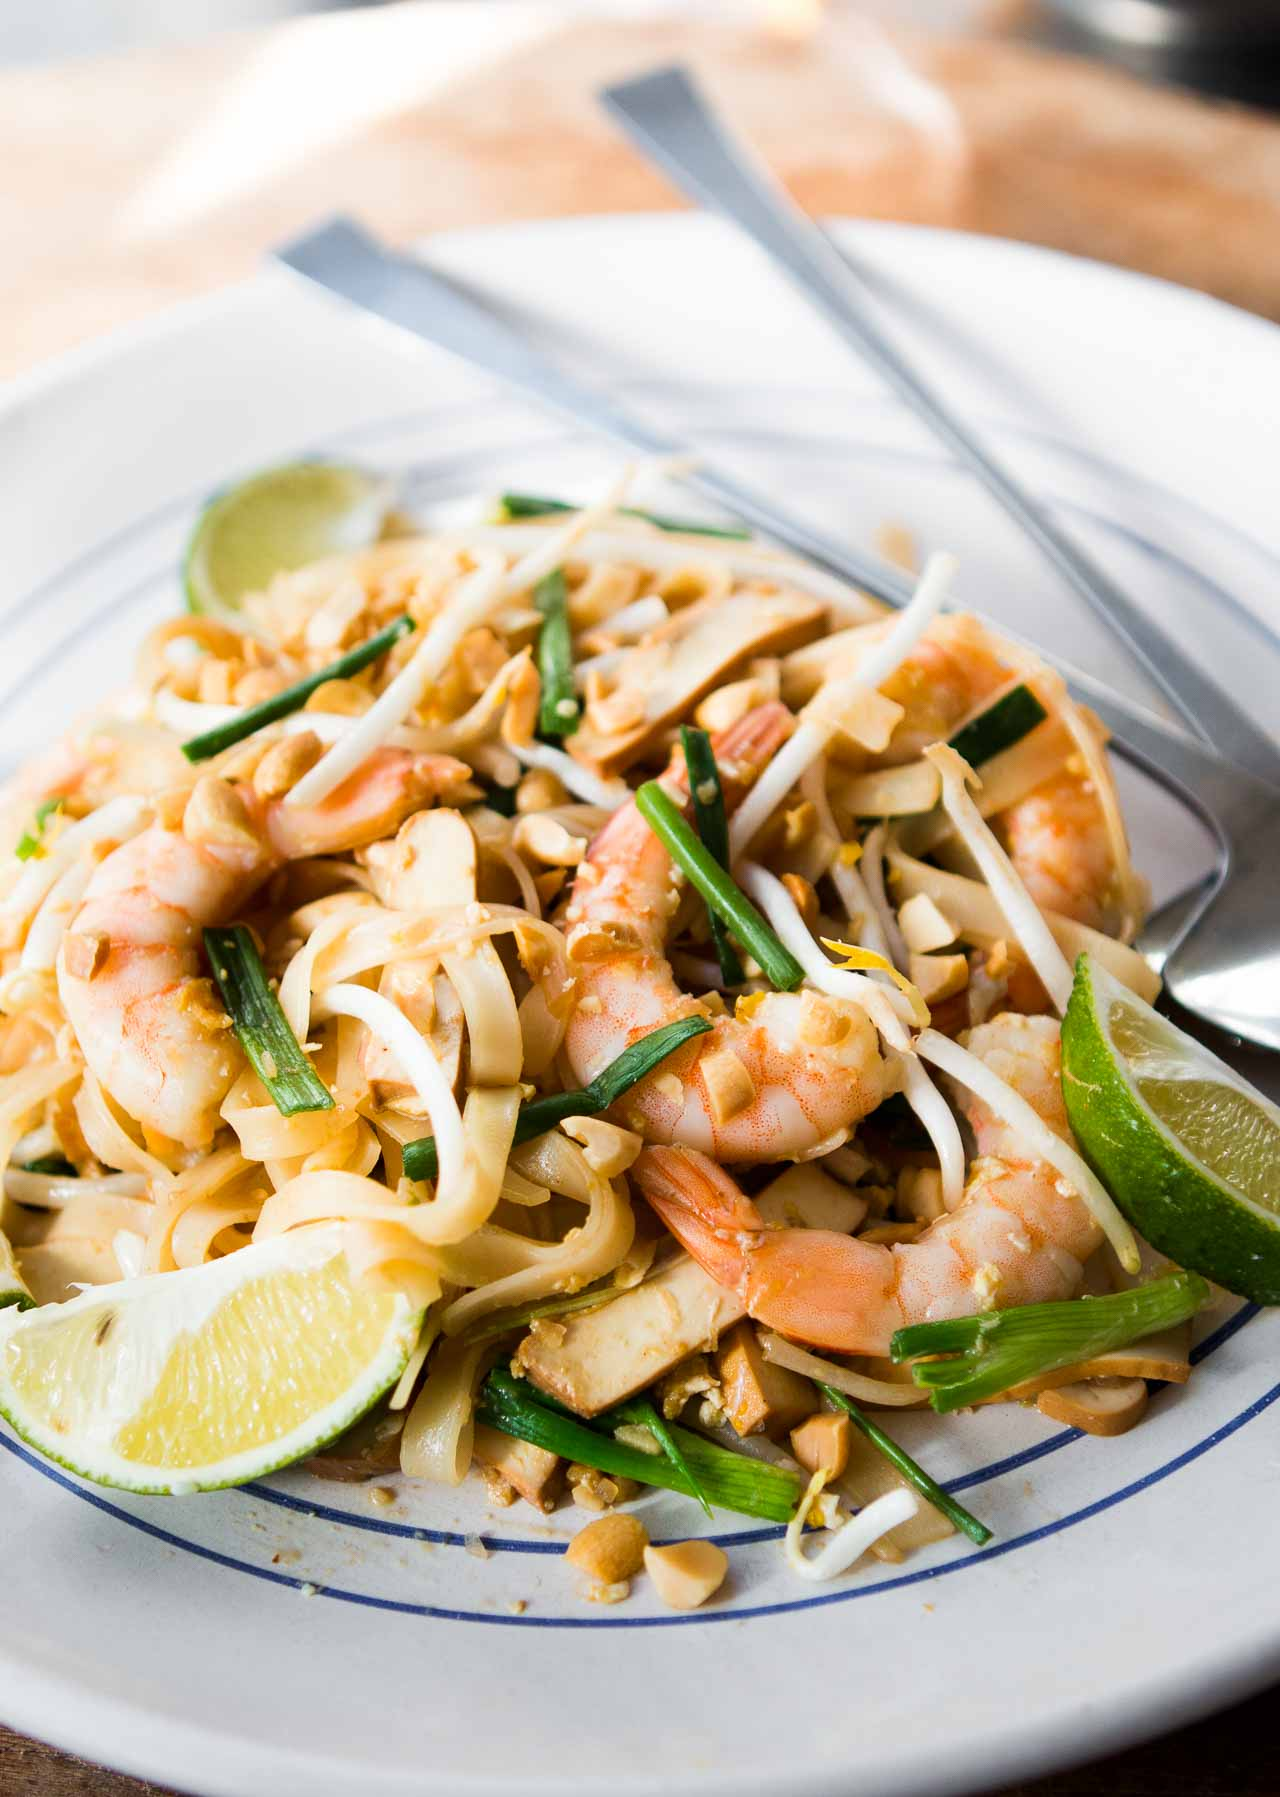 A fast, easy-to-make Thai noodle dish